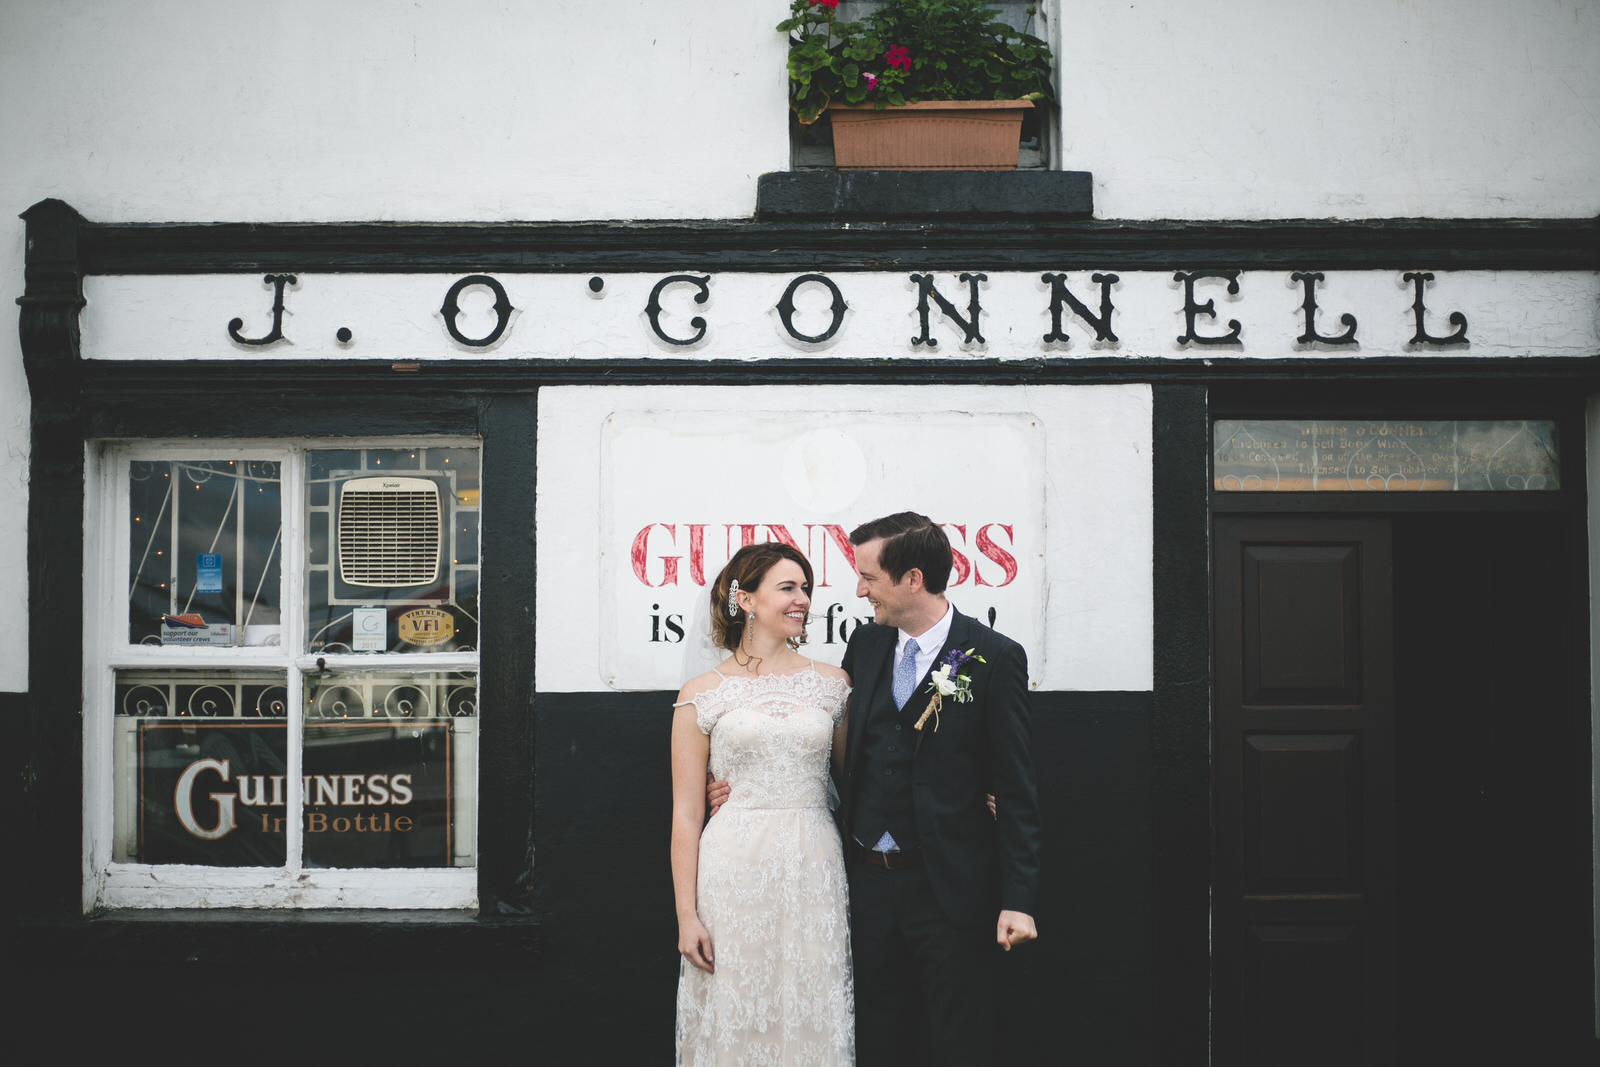 Wedding portrait at old Irish pub - J O Connell Pub